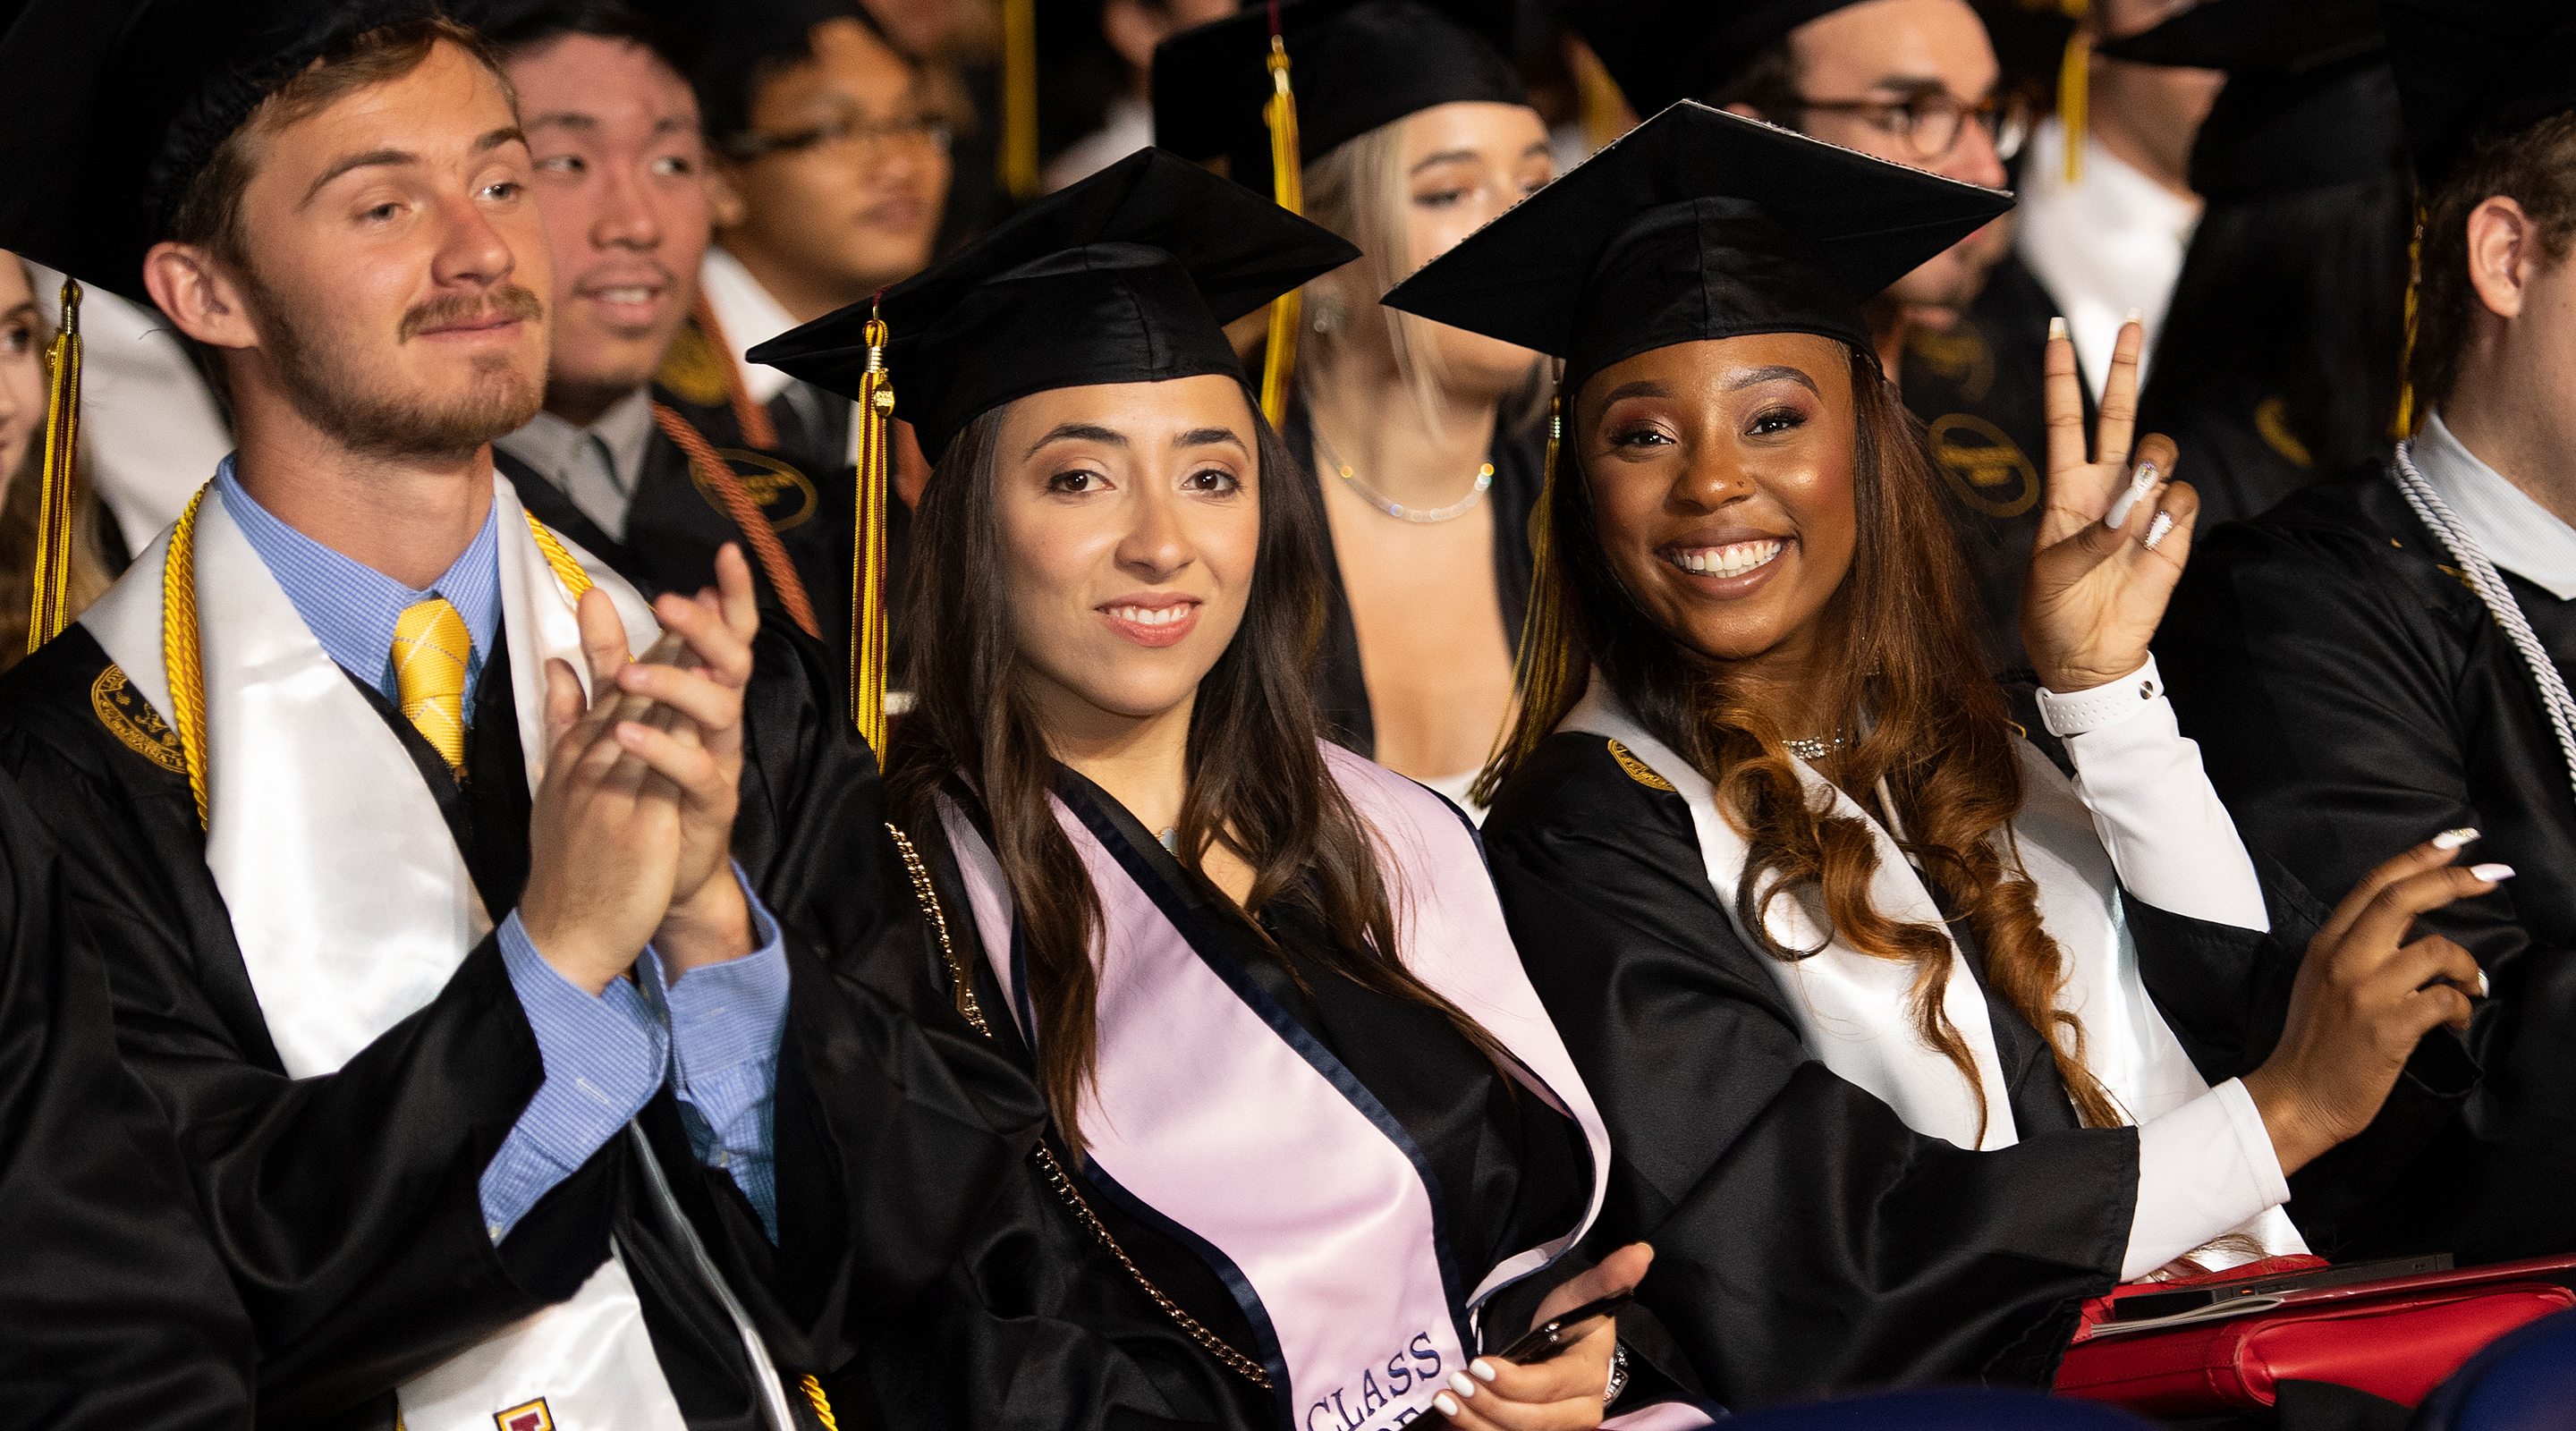 fe7c43b8af Students at the 2019 Commencement